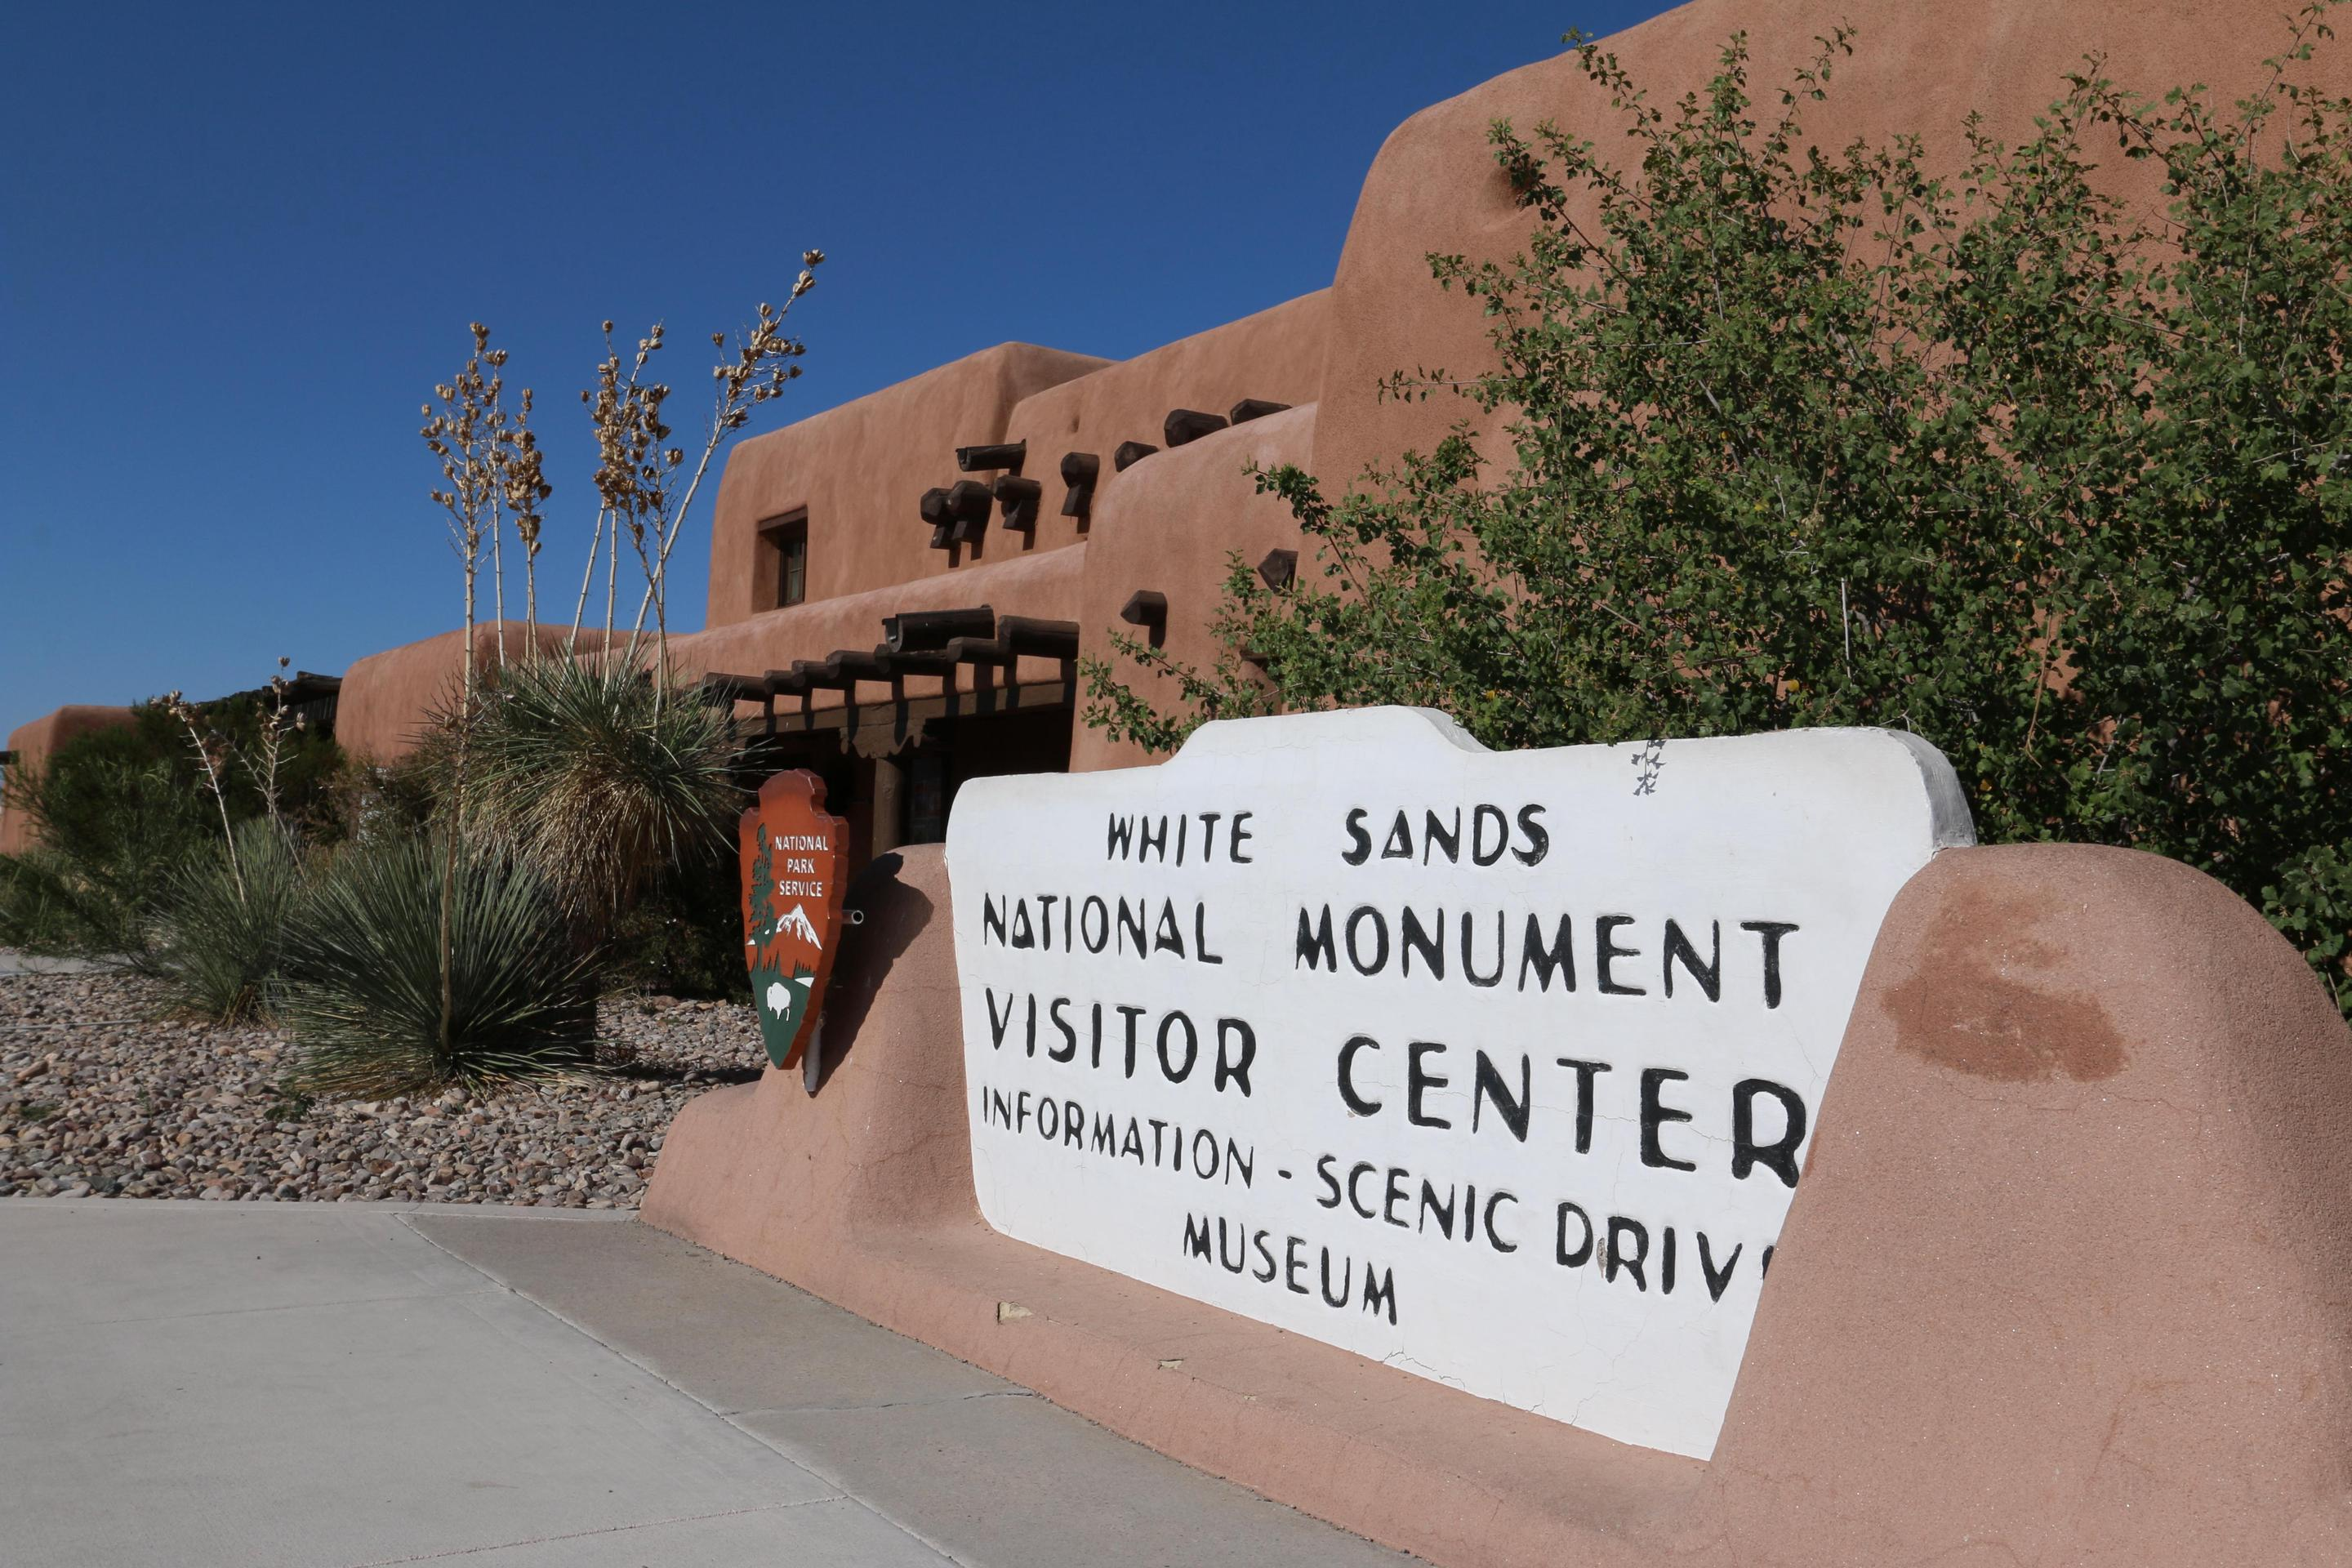 White Sands National Park Visitor CenterThis historic sign greets visitors as they enter the White Sands visitor center complex.